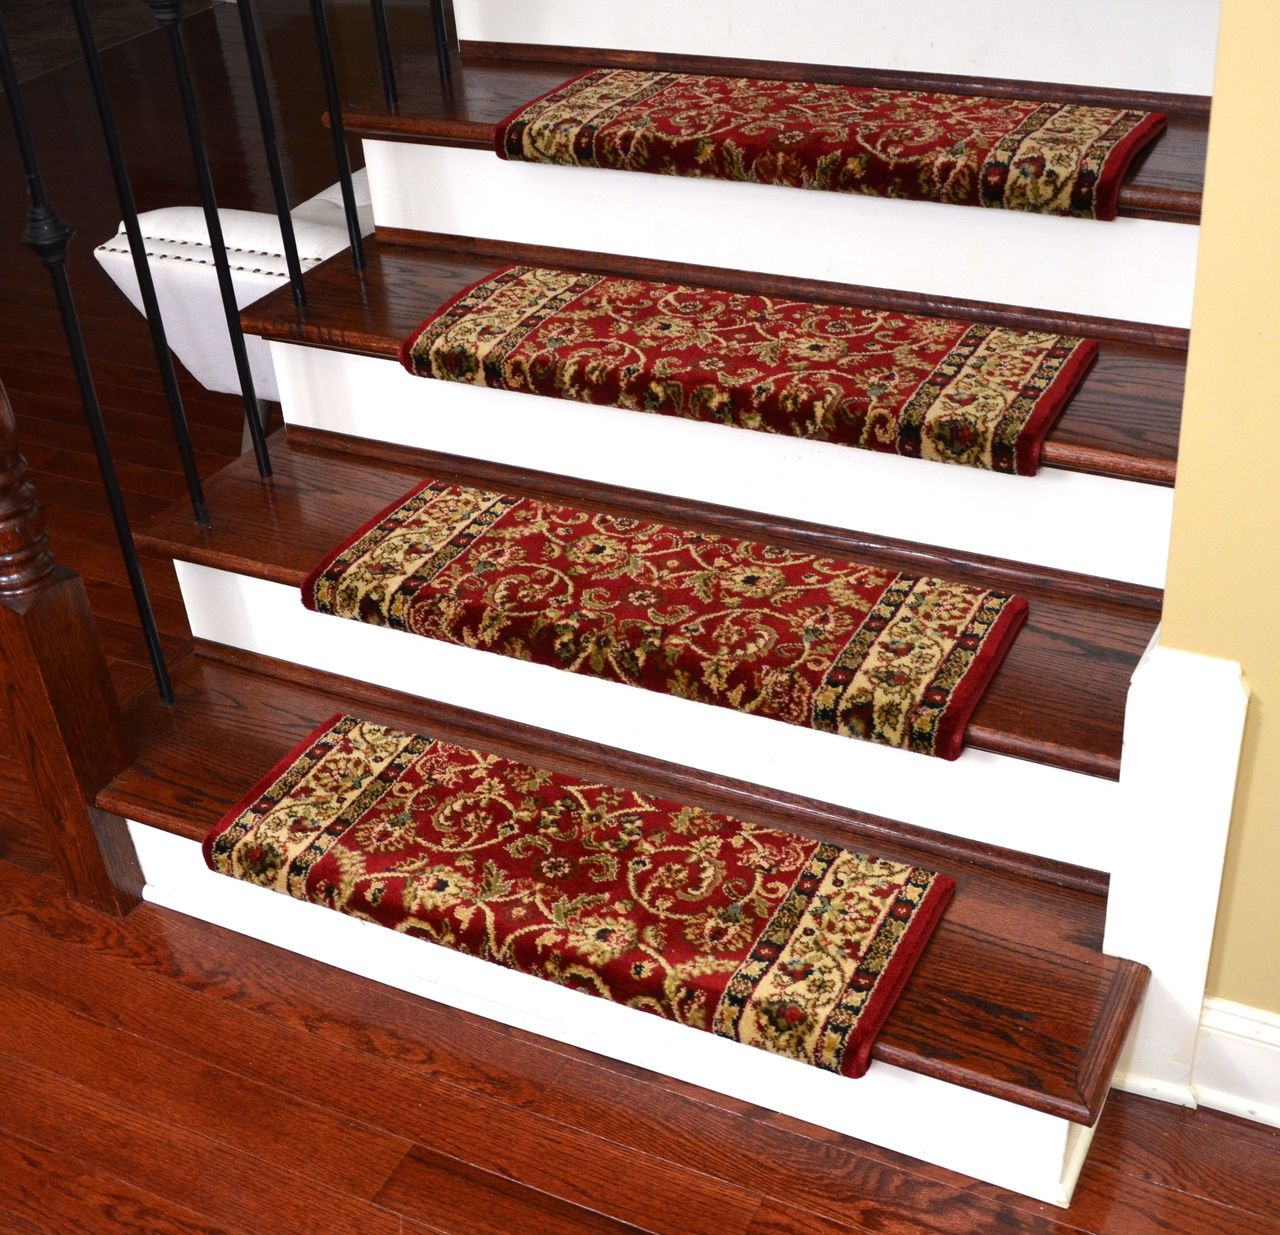 Dean Non Slip Tape Free Pet Friendly Stair Gripper Bullnose Carpet Stair Treads Classic Keshan Claret Red 31 W 3 Bullnose Carpet Stair Treads Carpet Stair Treads Carpet Stairs